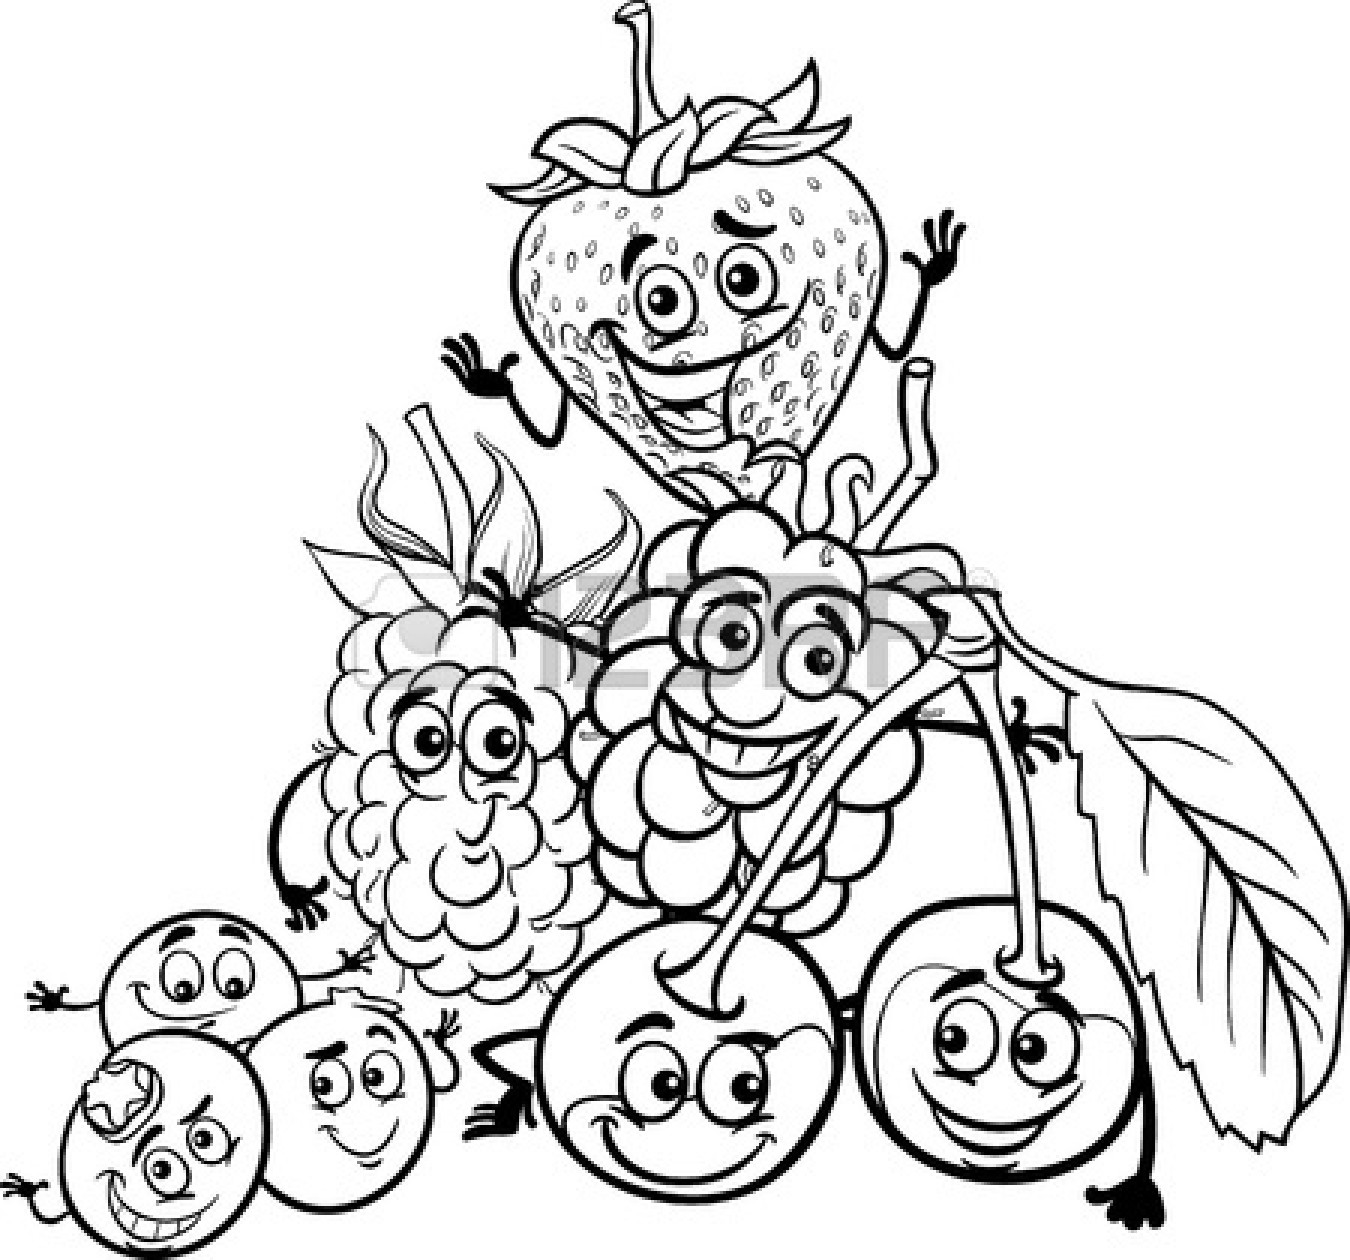 1350x1260 Fruit black and white fruit clip art black and white clipart 2